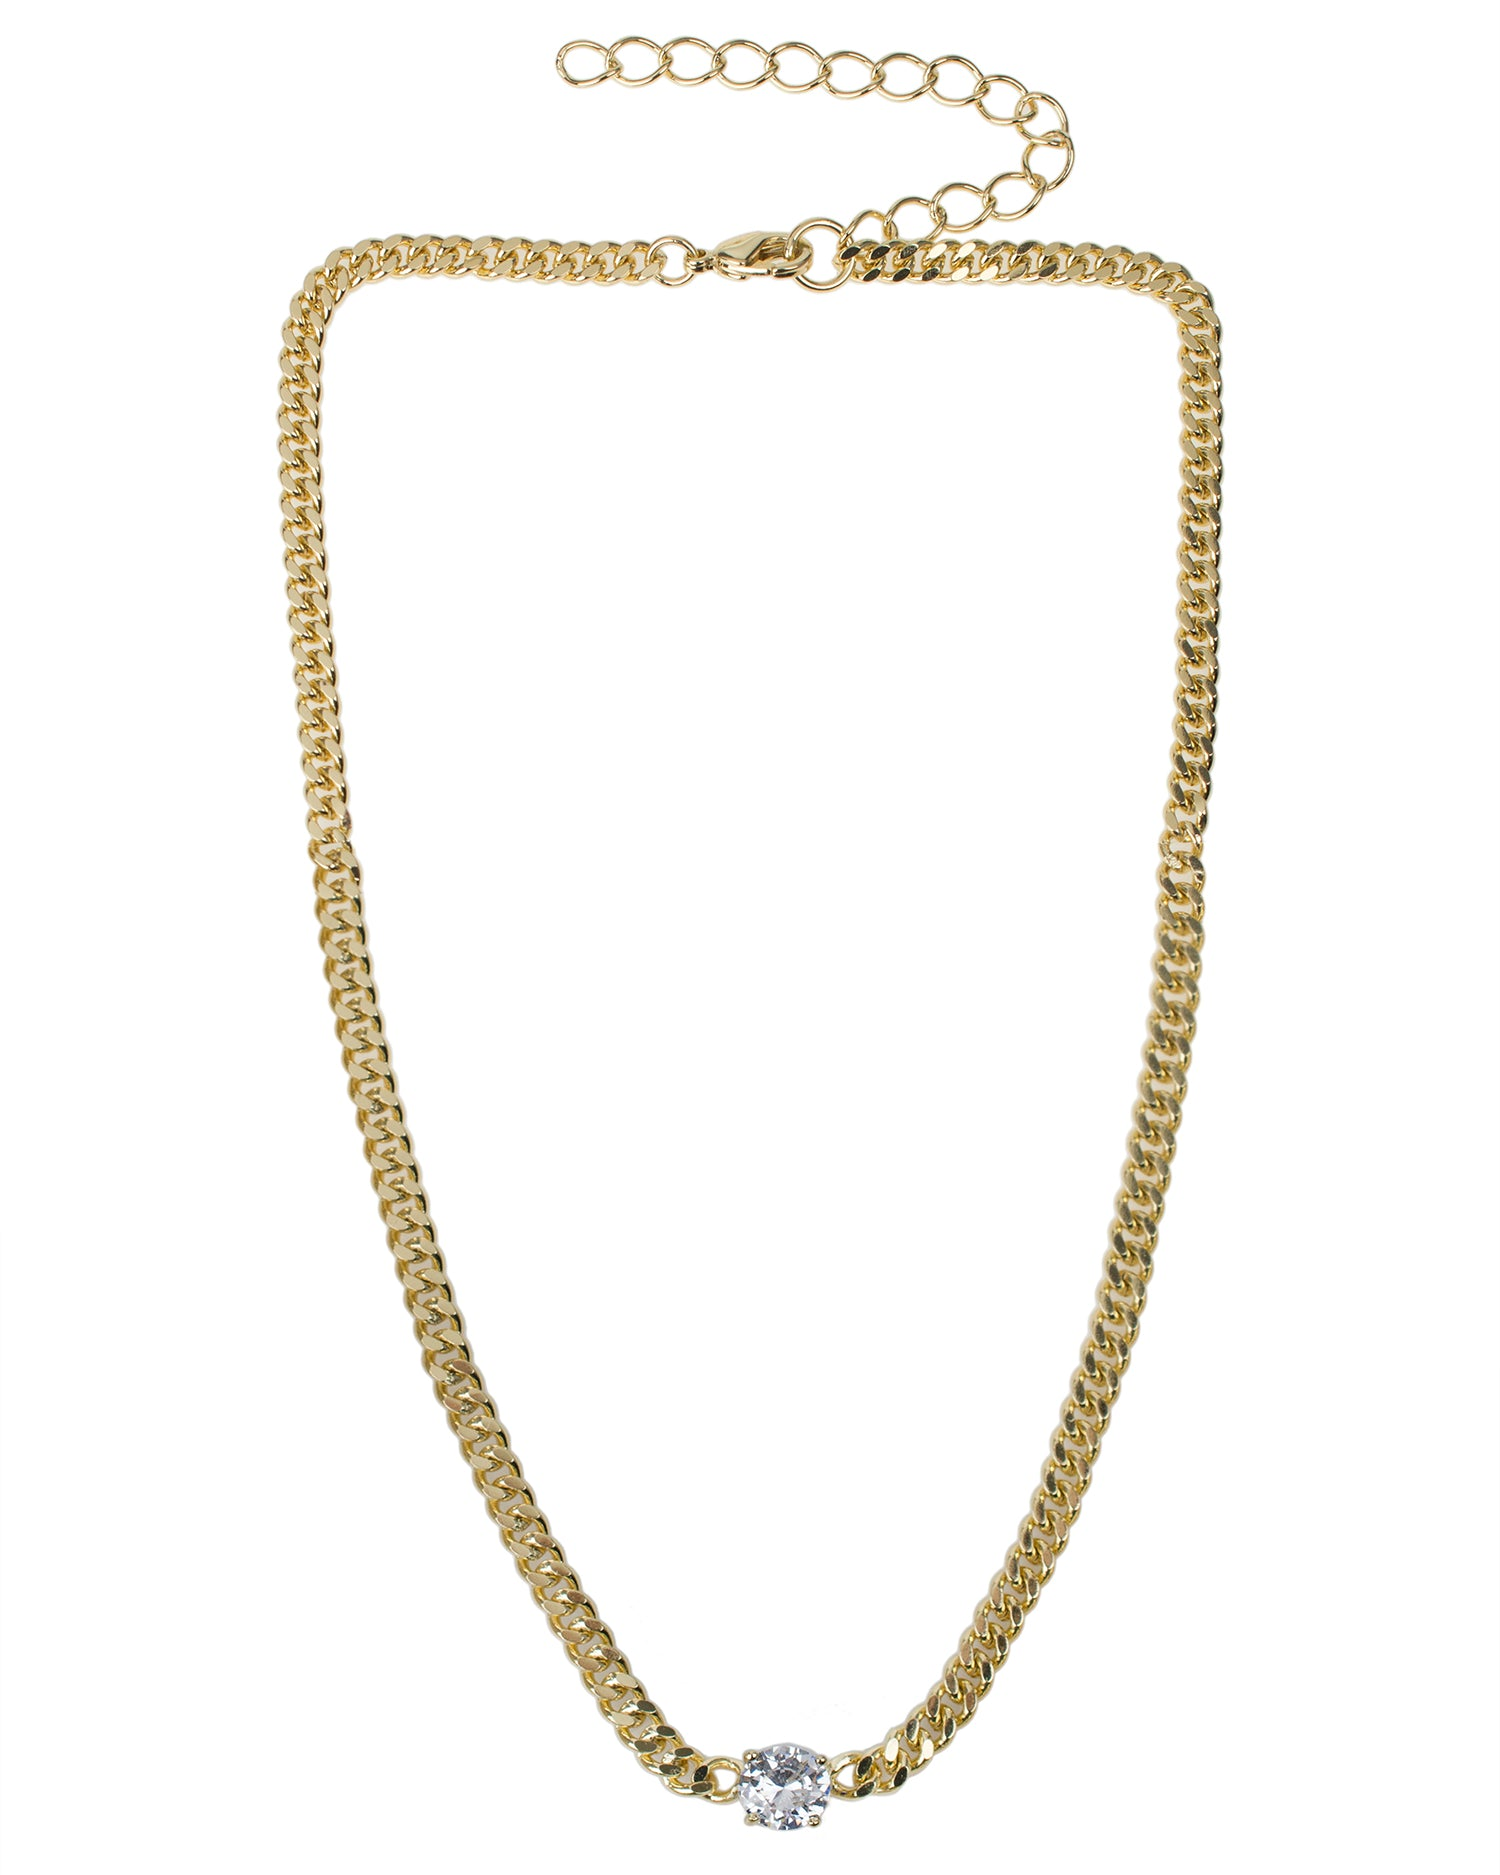 Curb Chain Necklace with Round CZ